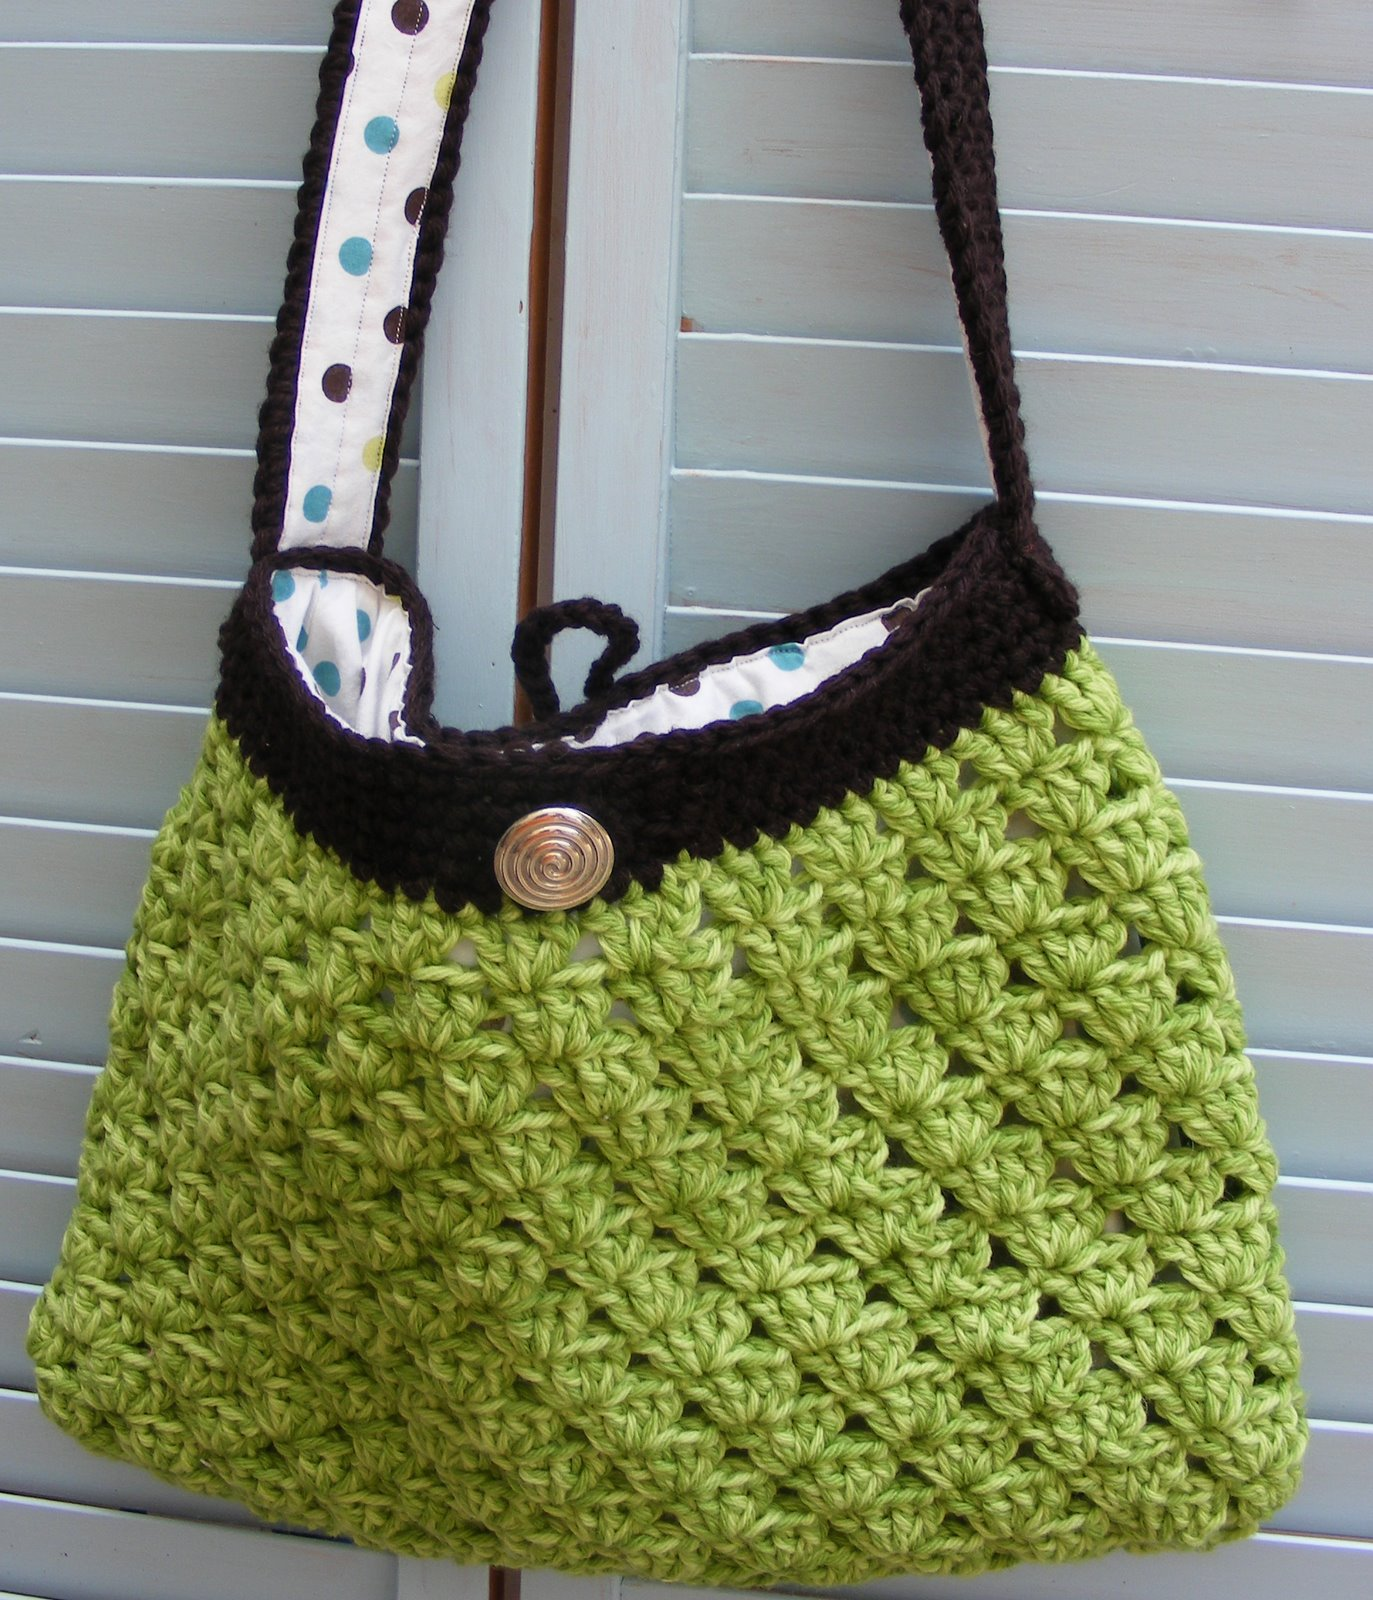 Crochet Purse Patterns Free Easy : Free Hobo Printable Purse Patterns - Pattern for Purse - Purse